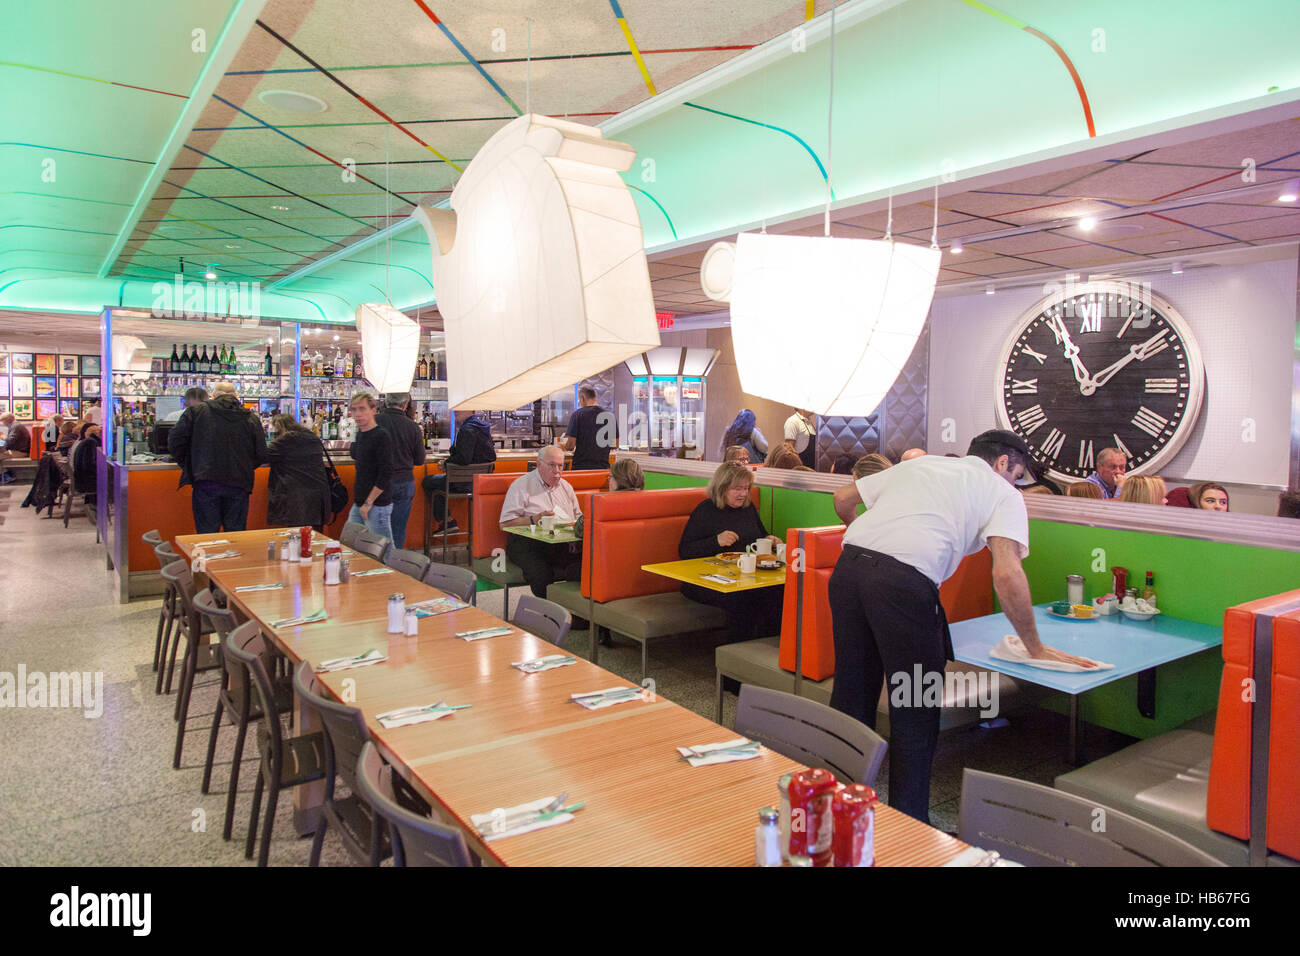 Tick Tock Diner on 34th Street and 8th Avenue, Midtown, Manhattan, New York City, United States of America. - Stock Image